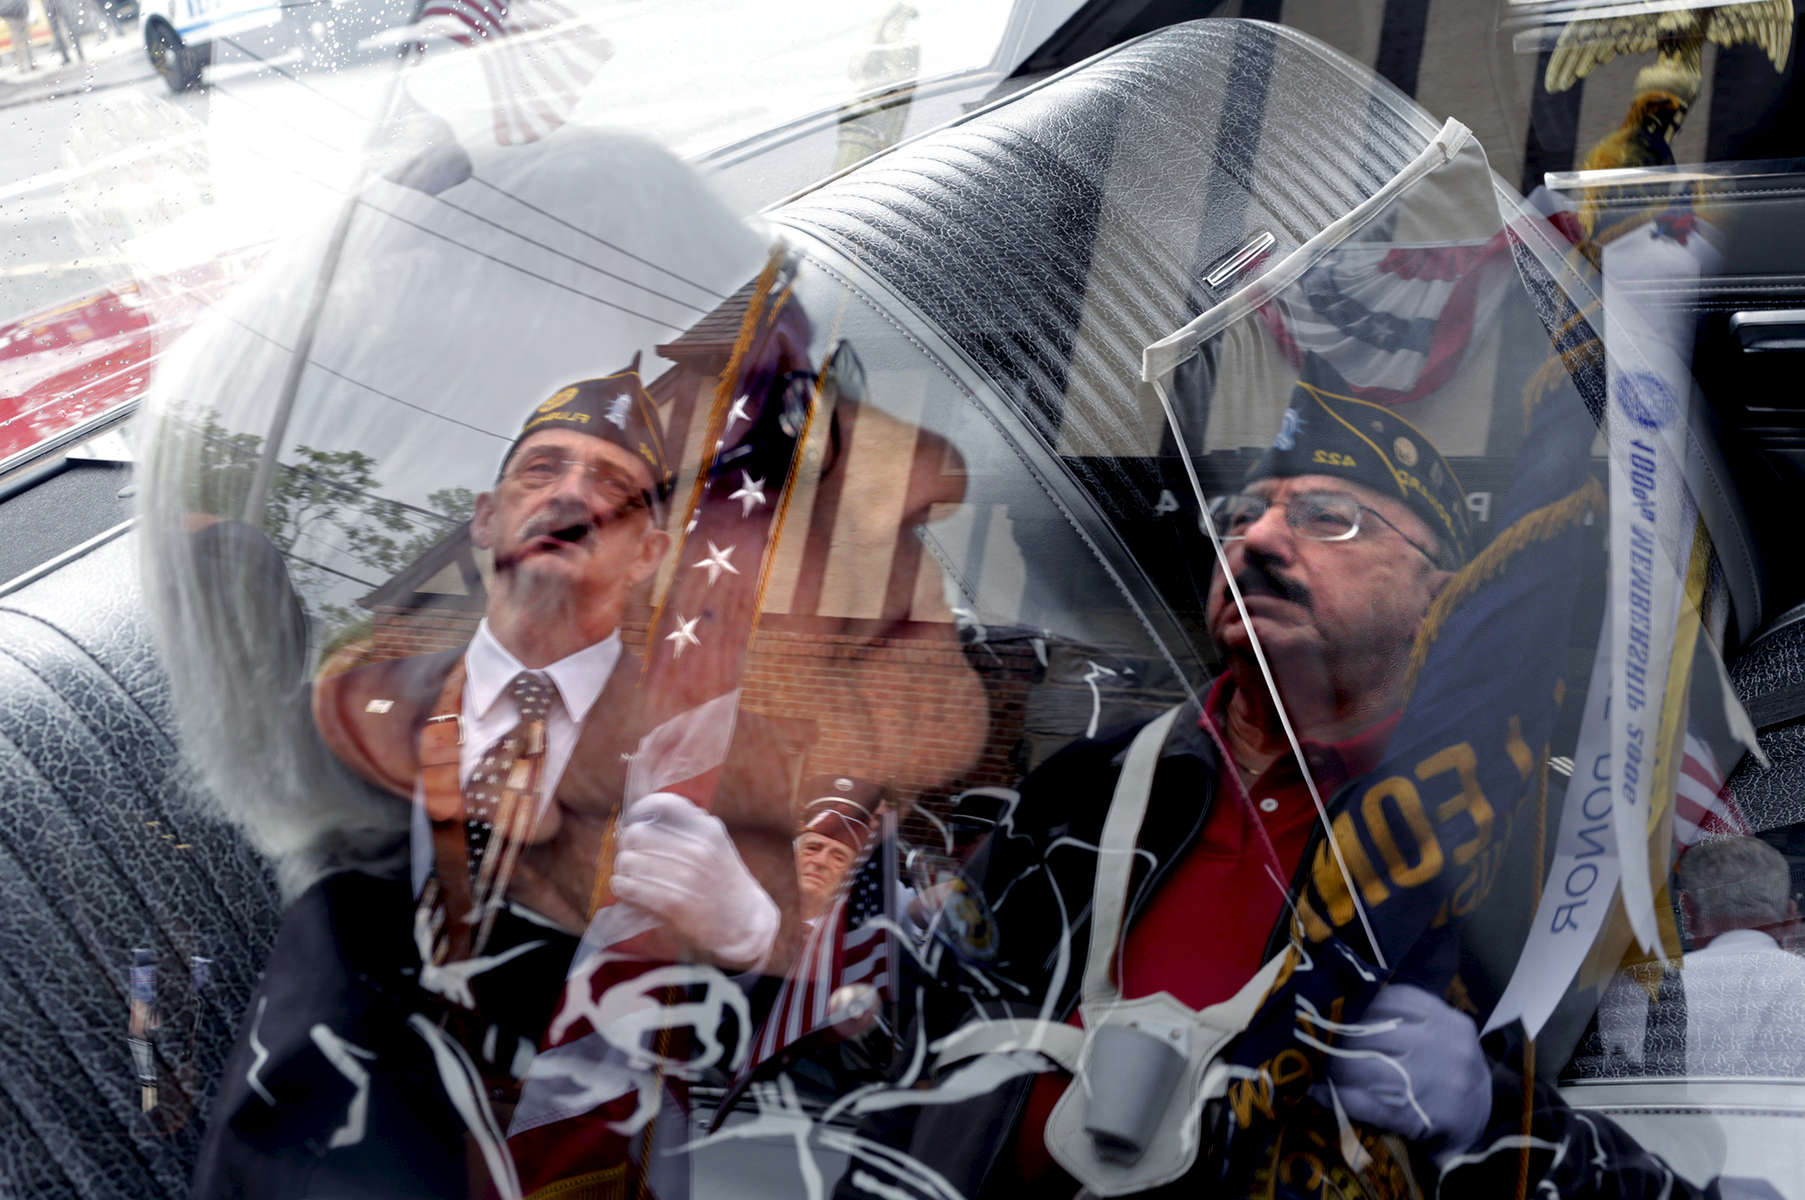 Veterans' reflections are seen on the car window of Eve Stollak, wife of army veteran Jack Stollack, as they prepare to participate in the The Little Neck-Douglaston Memorial Day Parade, the largest in the nation, in Little Neck, NY on May 29, 2017.(For The New York Times)